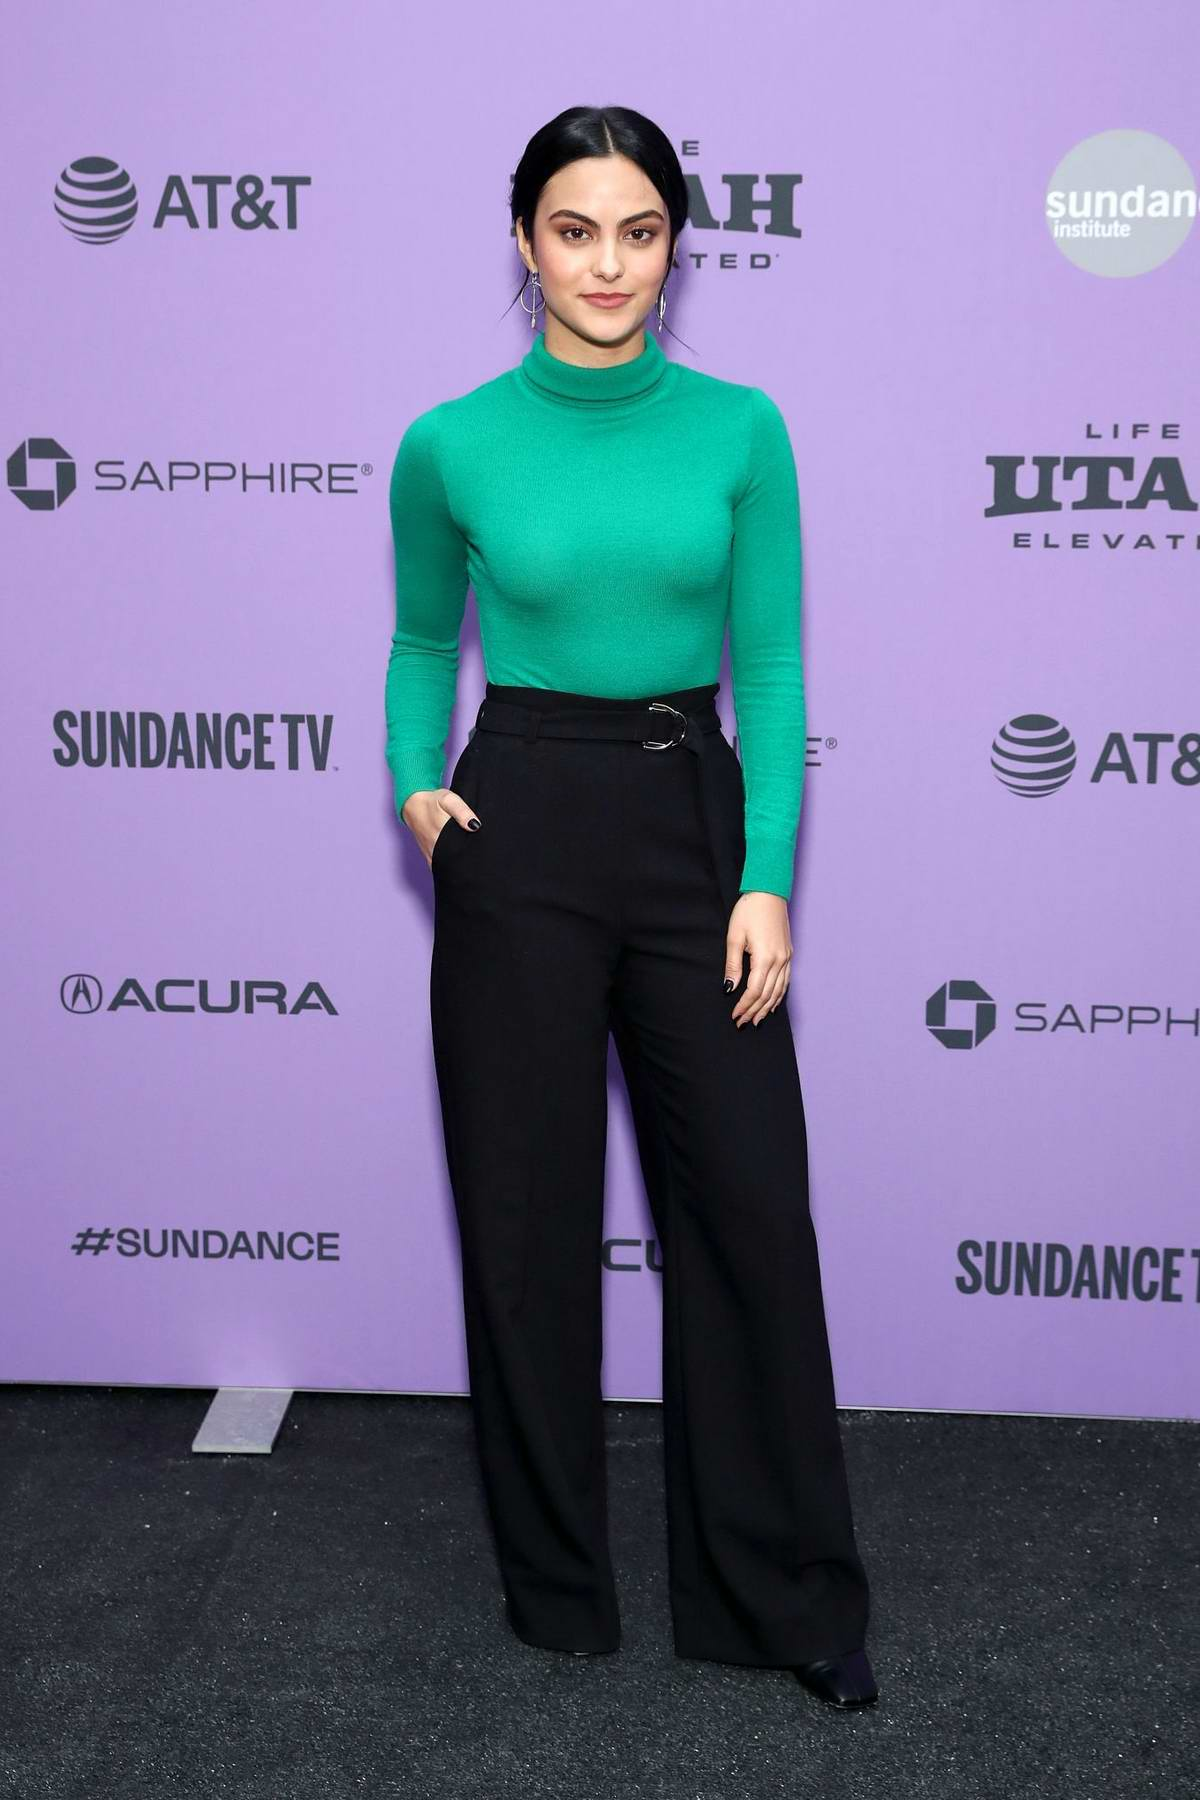 Camila Mendes attends the Premiere of 'Palm Springs' during the Sundance Film Festival 2020 in Park City, Utah